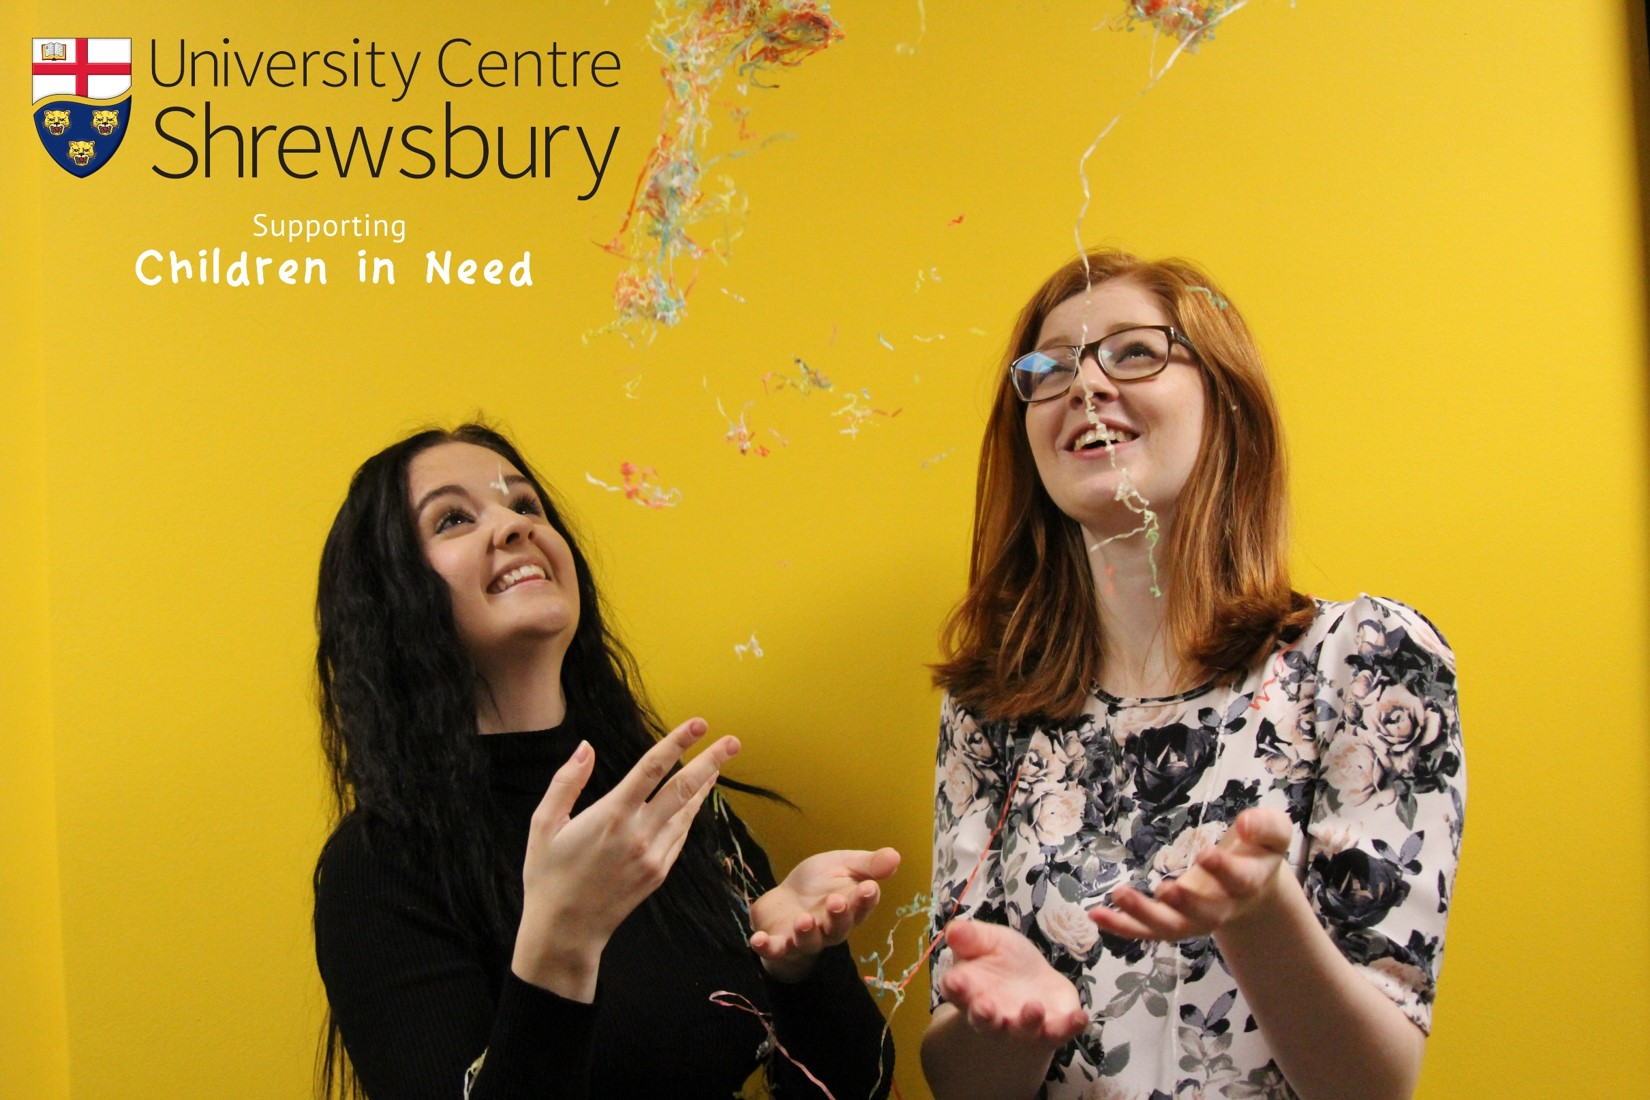 Children in Need at University Centre Shrewsbury